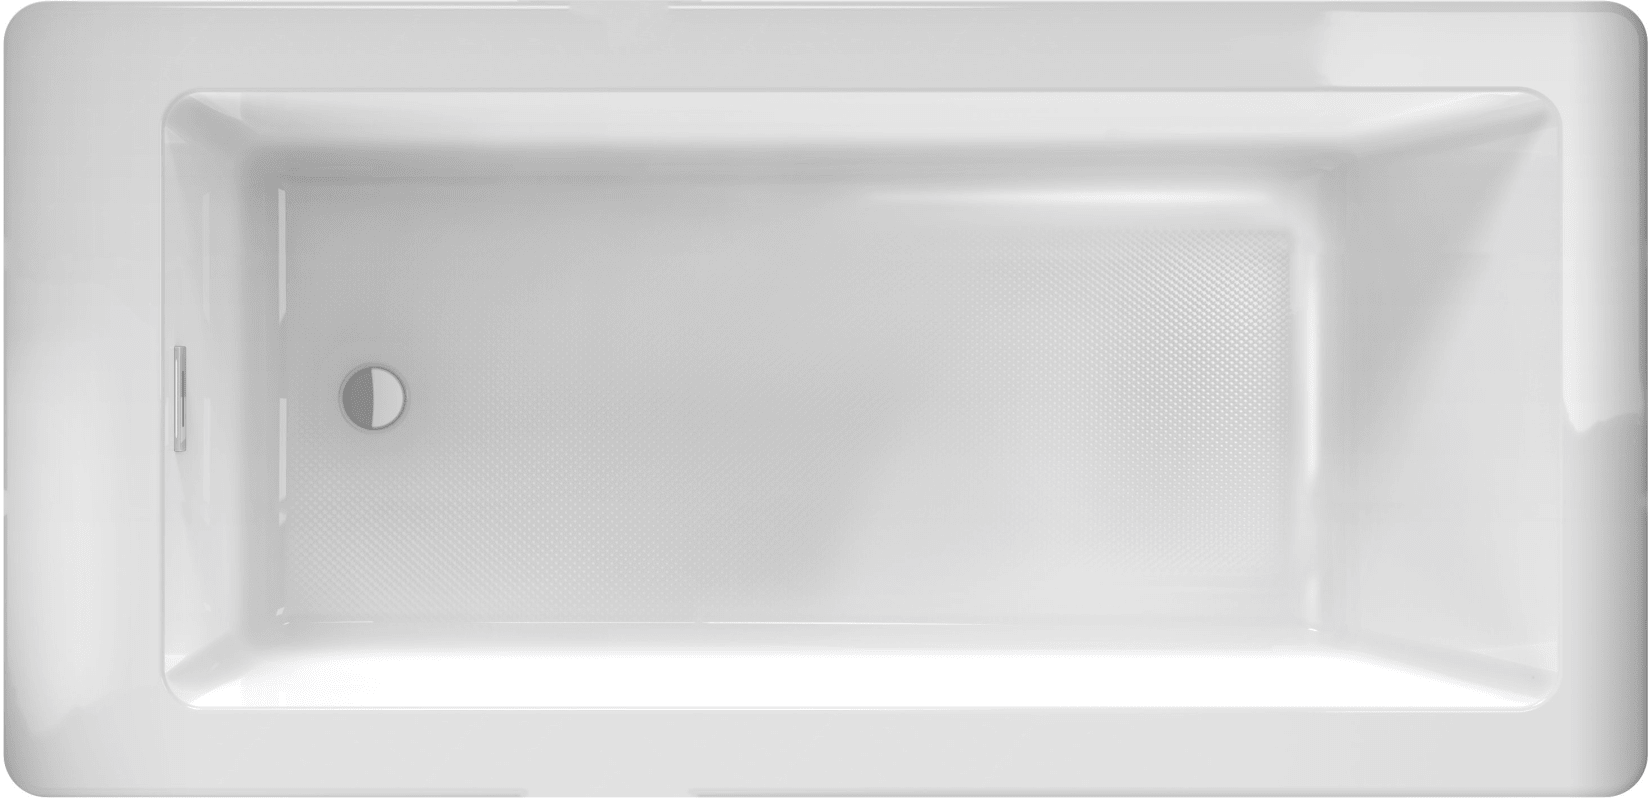 End Drain Freestanding Tub. Click to view larger image Faucet com  LNF6632BUXXXXW in White by Jacuzzi